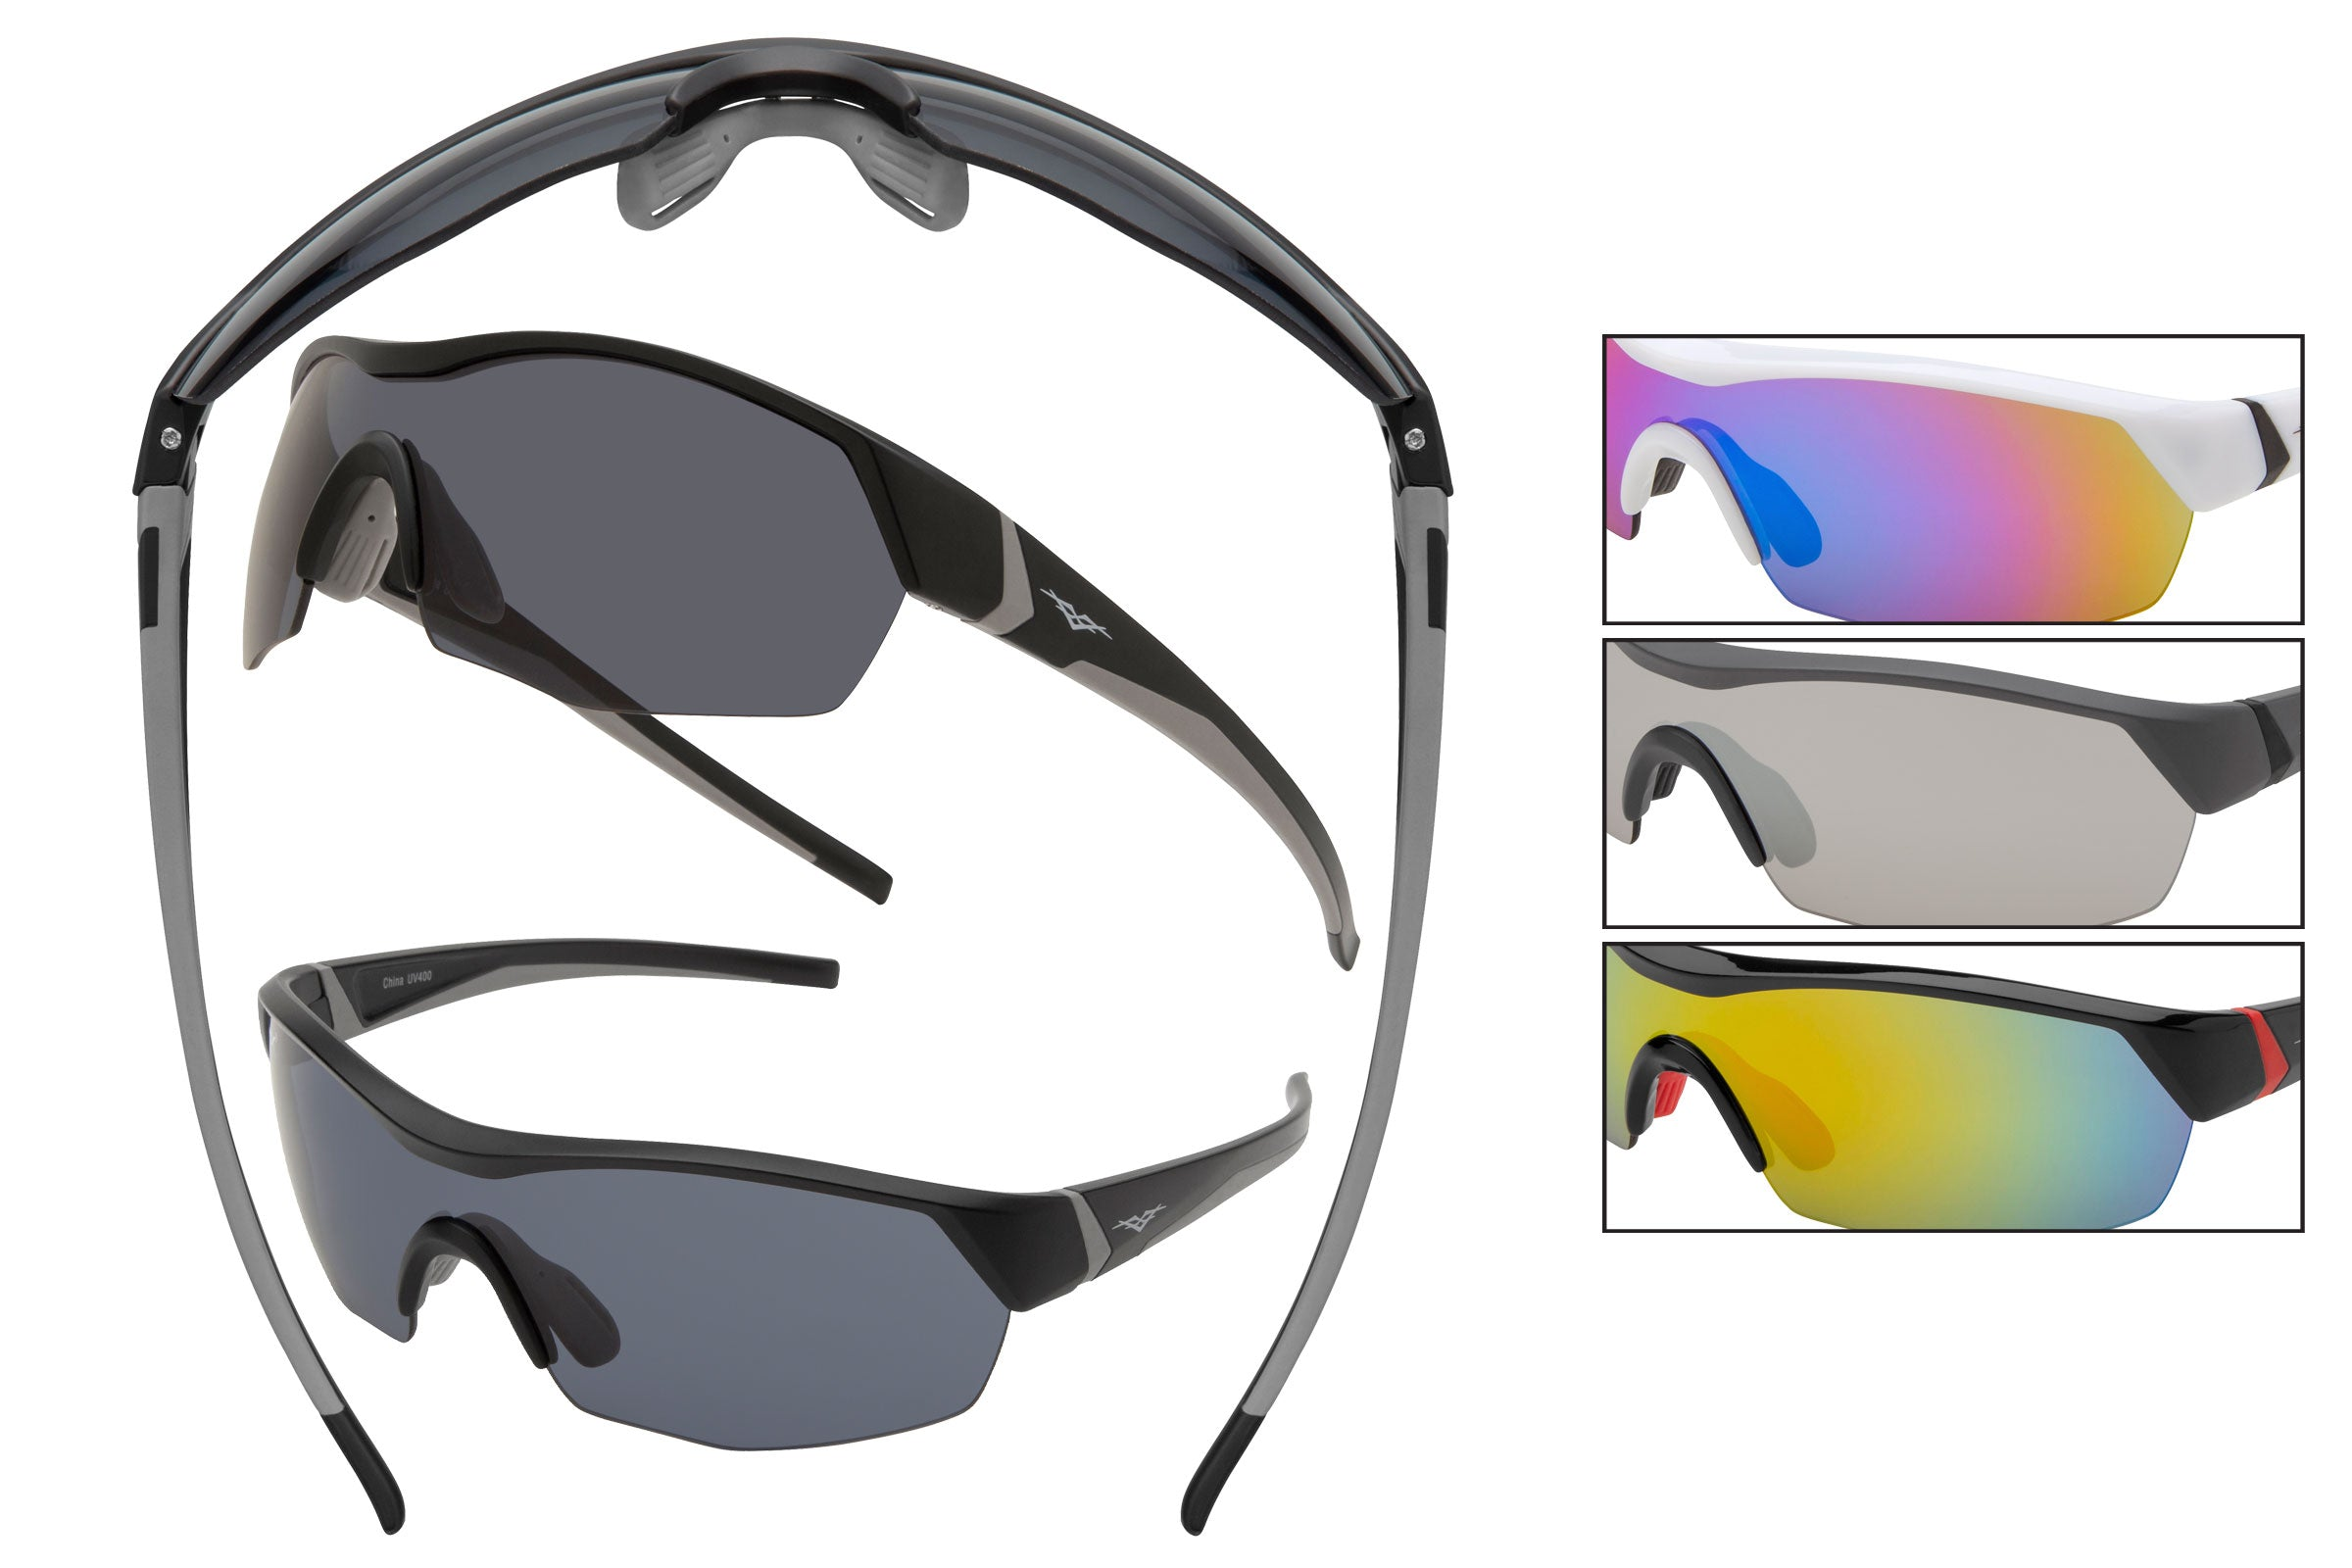 59217 - VertX PC Sport Wrap Sunglasses